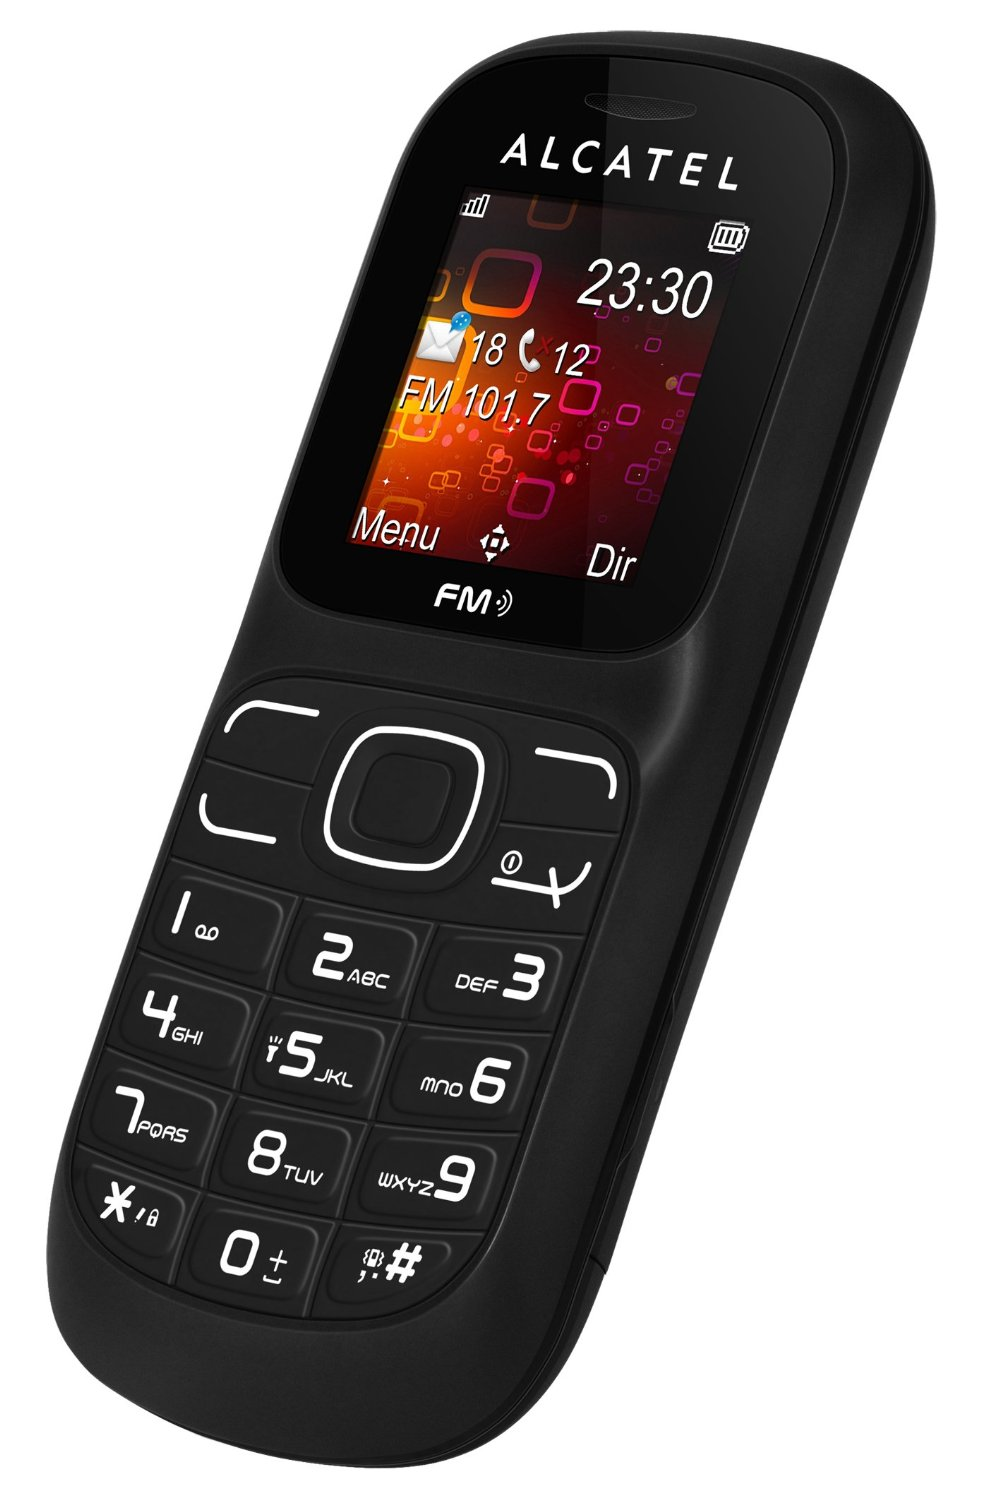 Alcatel One Touch 232a Basic Color Bar Style Phone